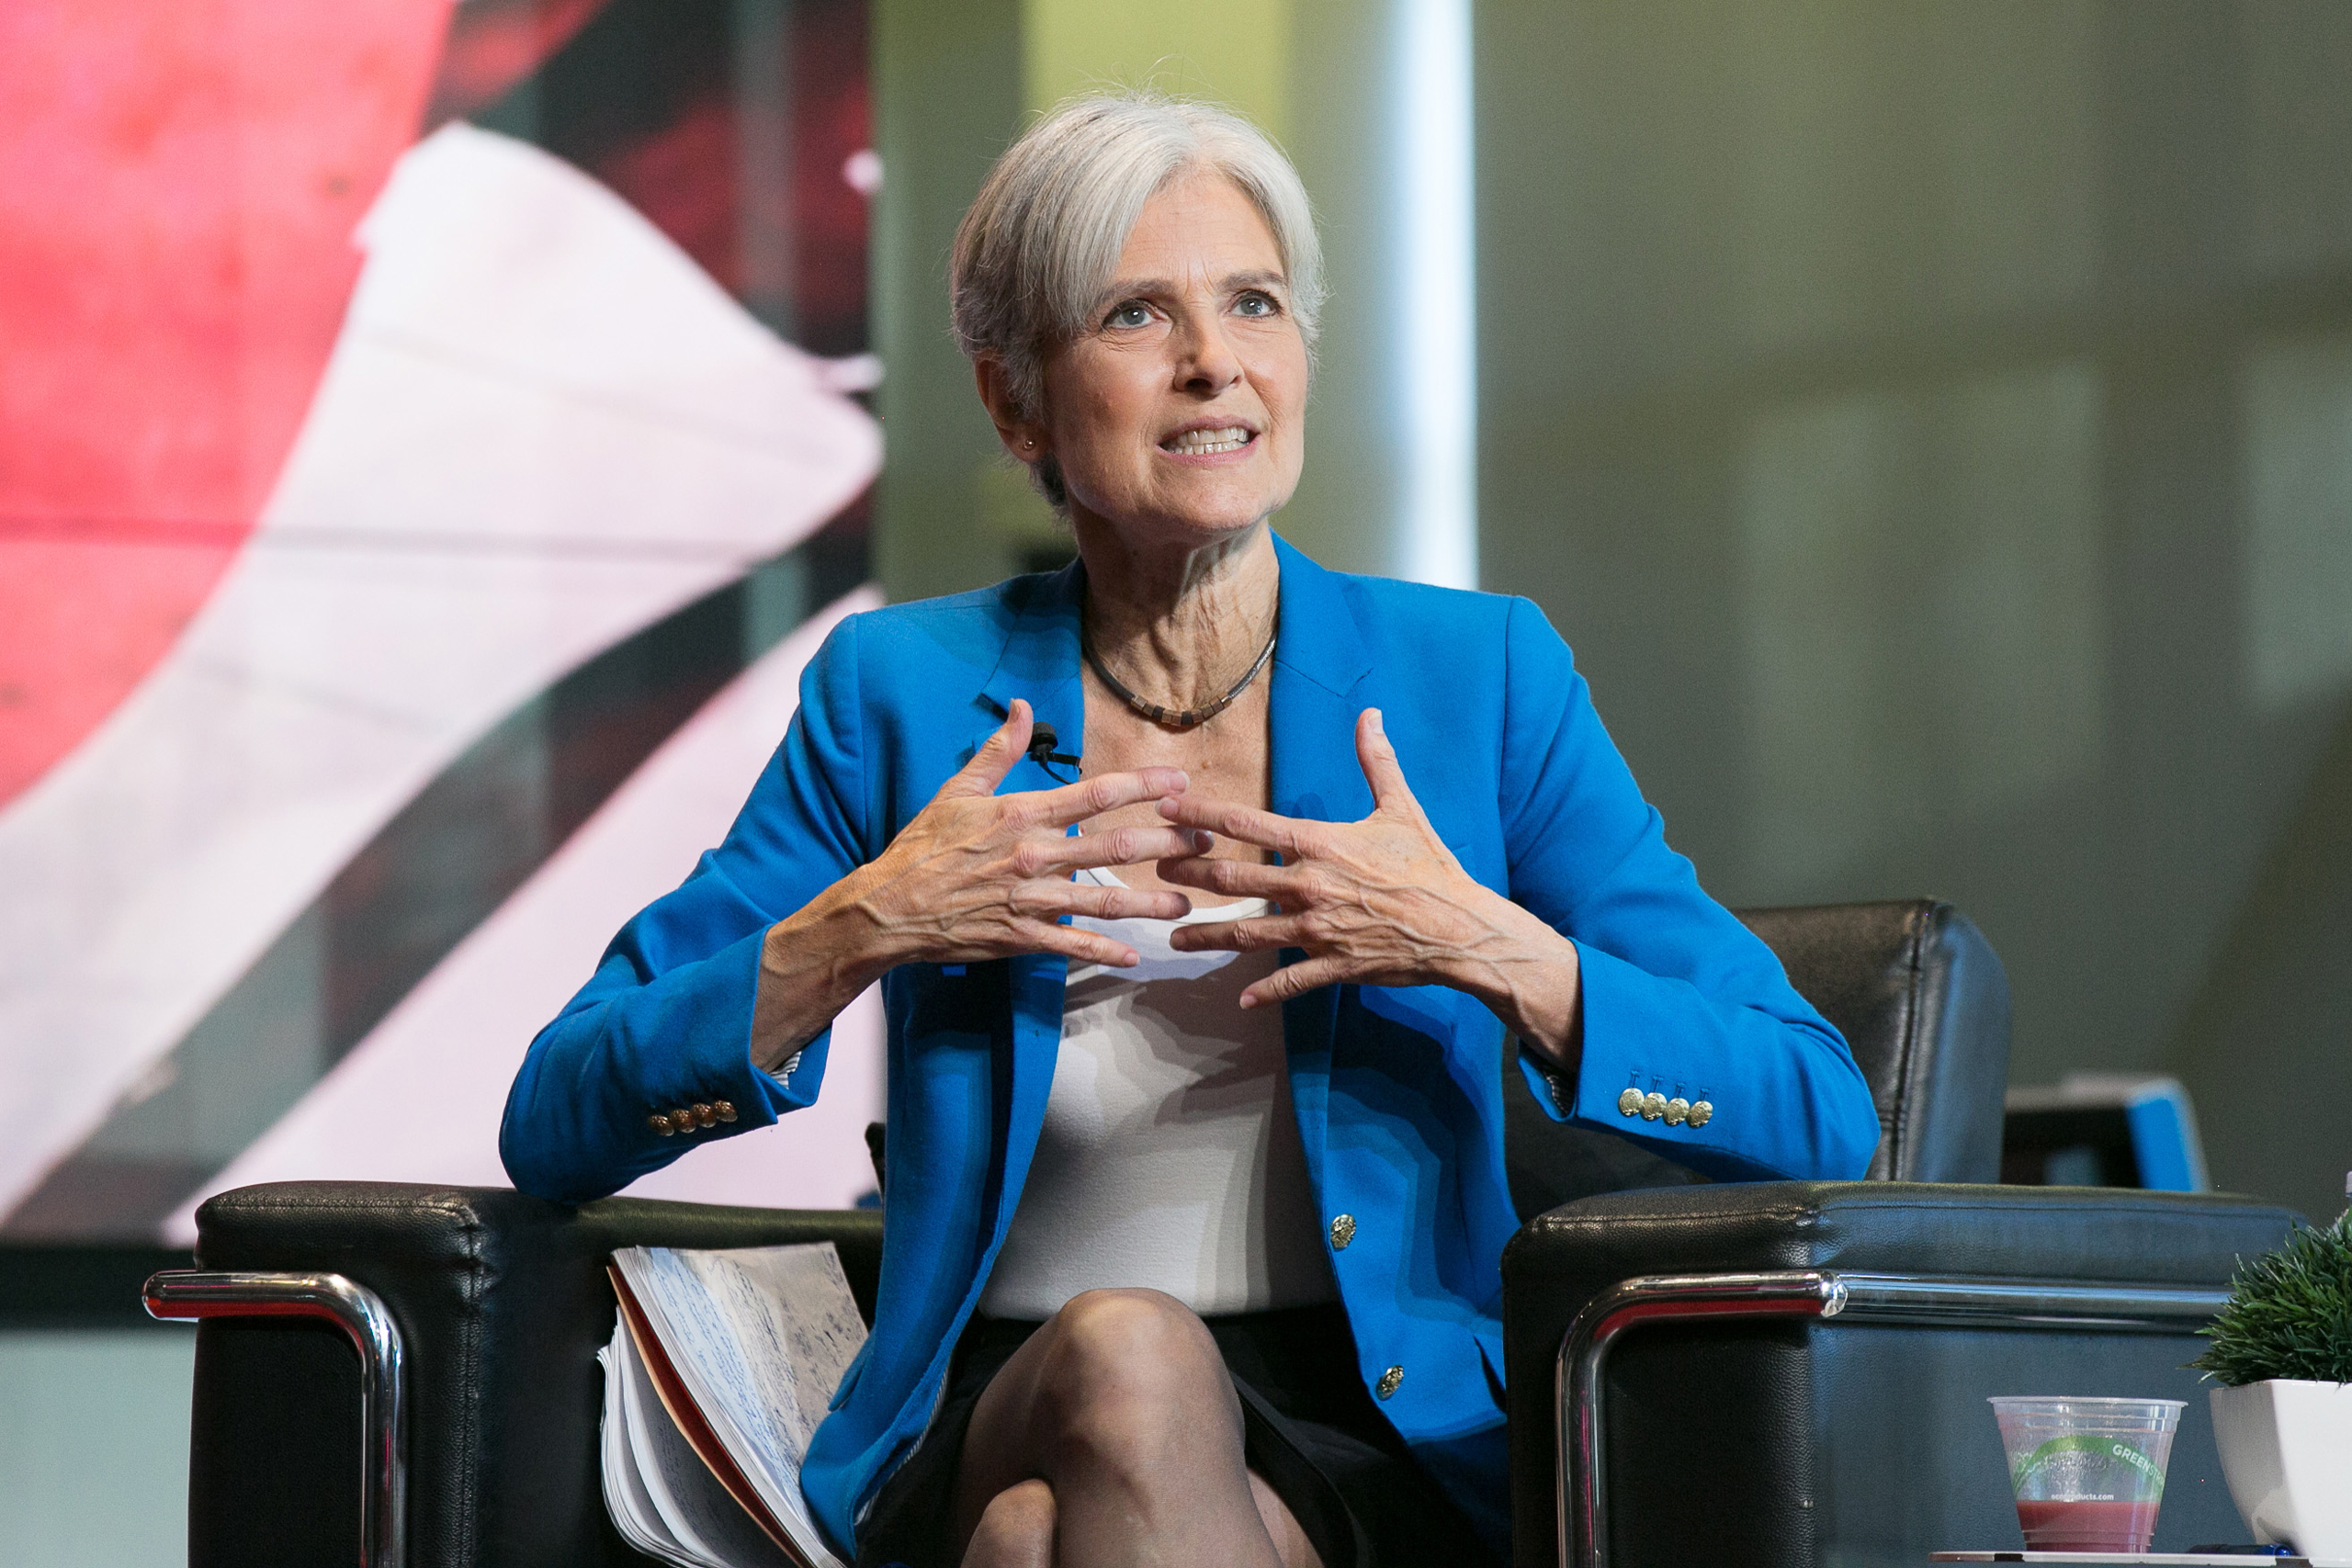 Jill Stein attends the Young Turks Town-Hall With Green Party Presidential Candidate Jill Stein at YouTube Space LA in Los Angeles on Oct. 21, 2016.